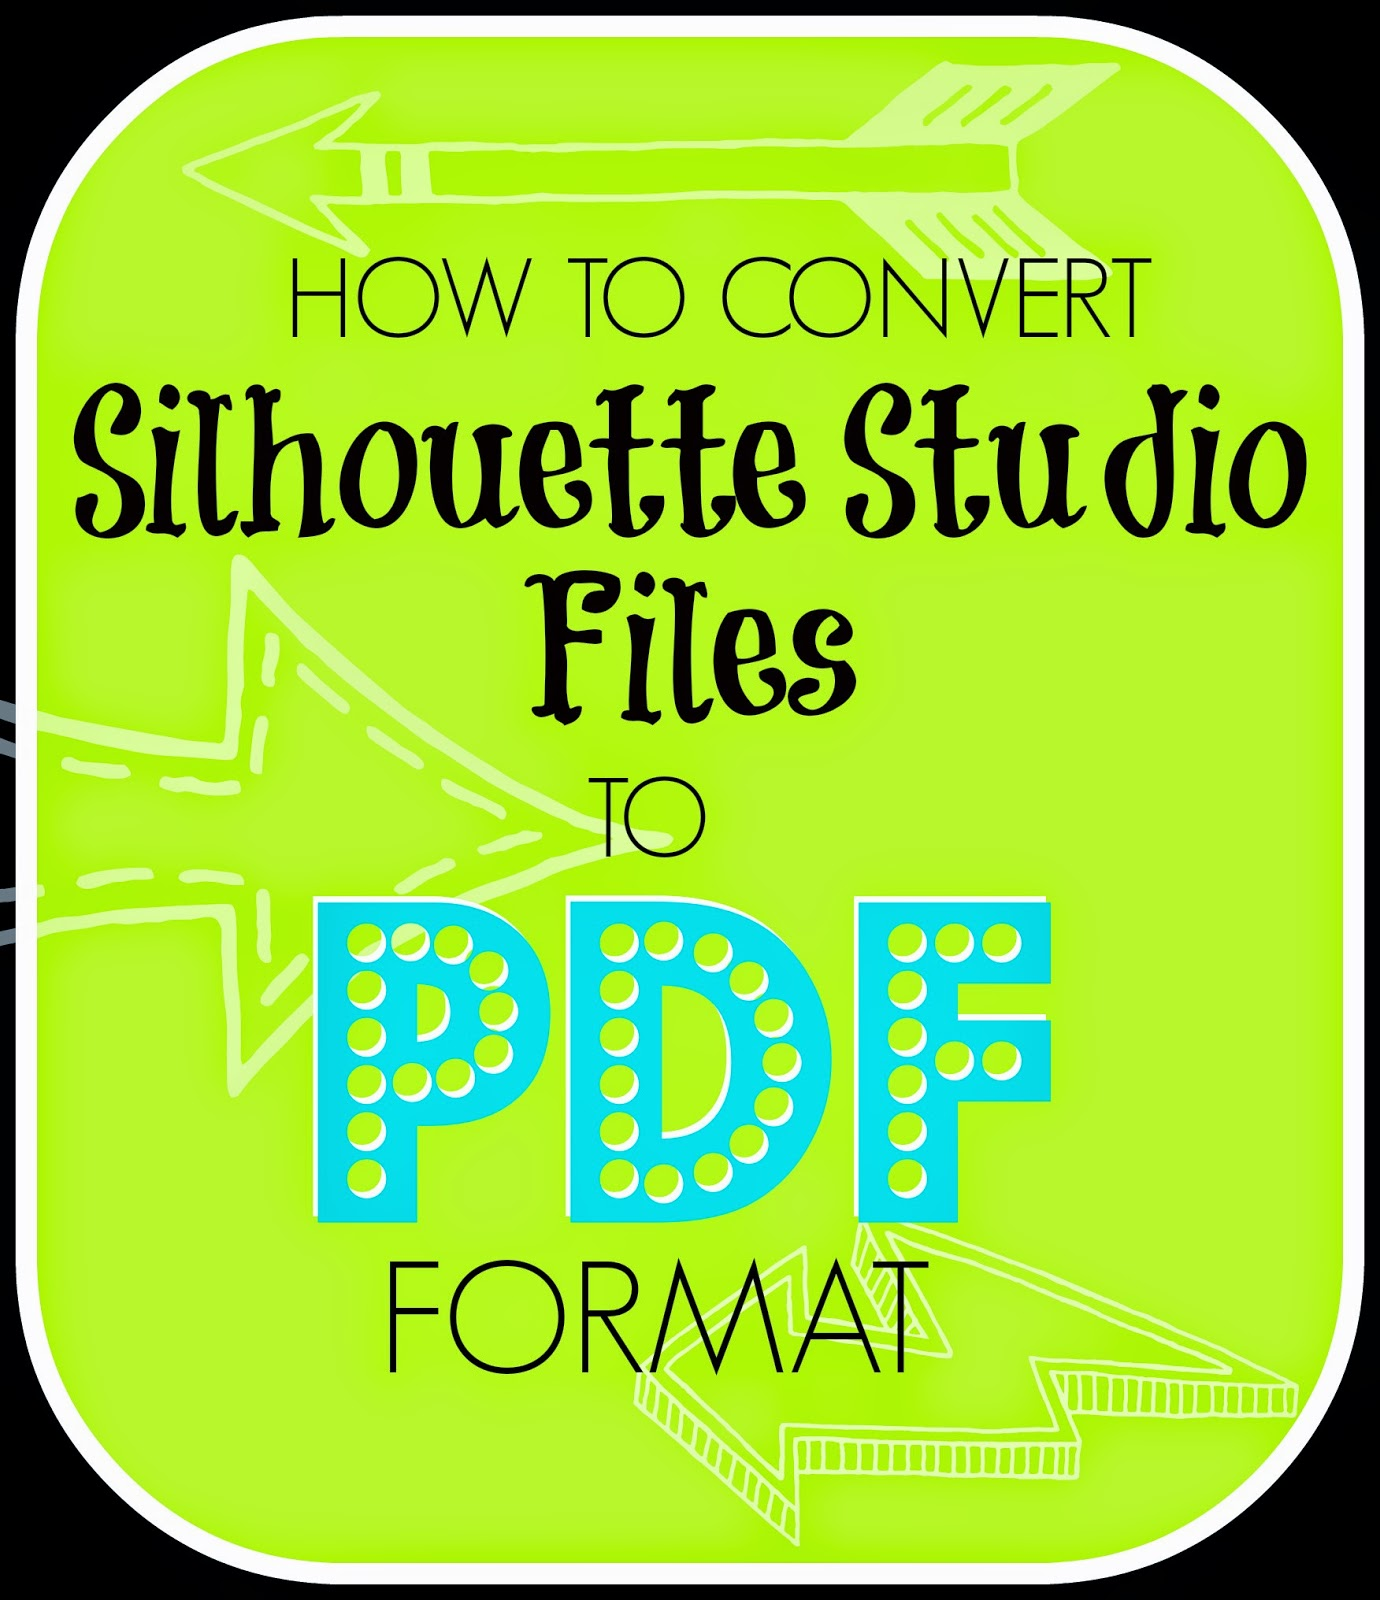 Silhouette Studio, files, PDF, convert